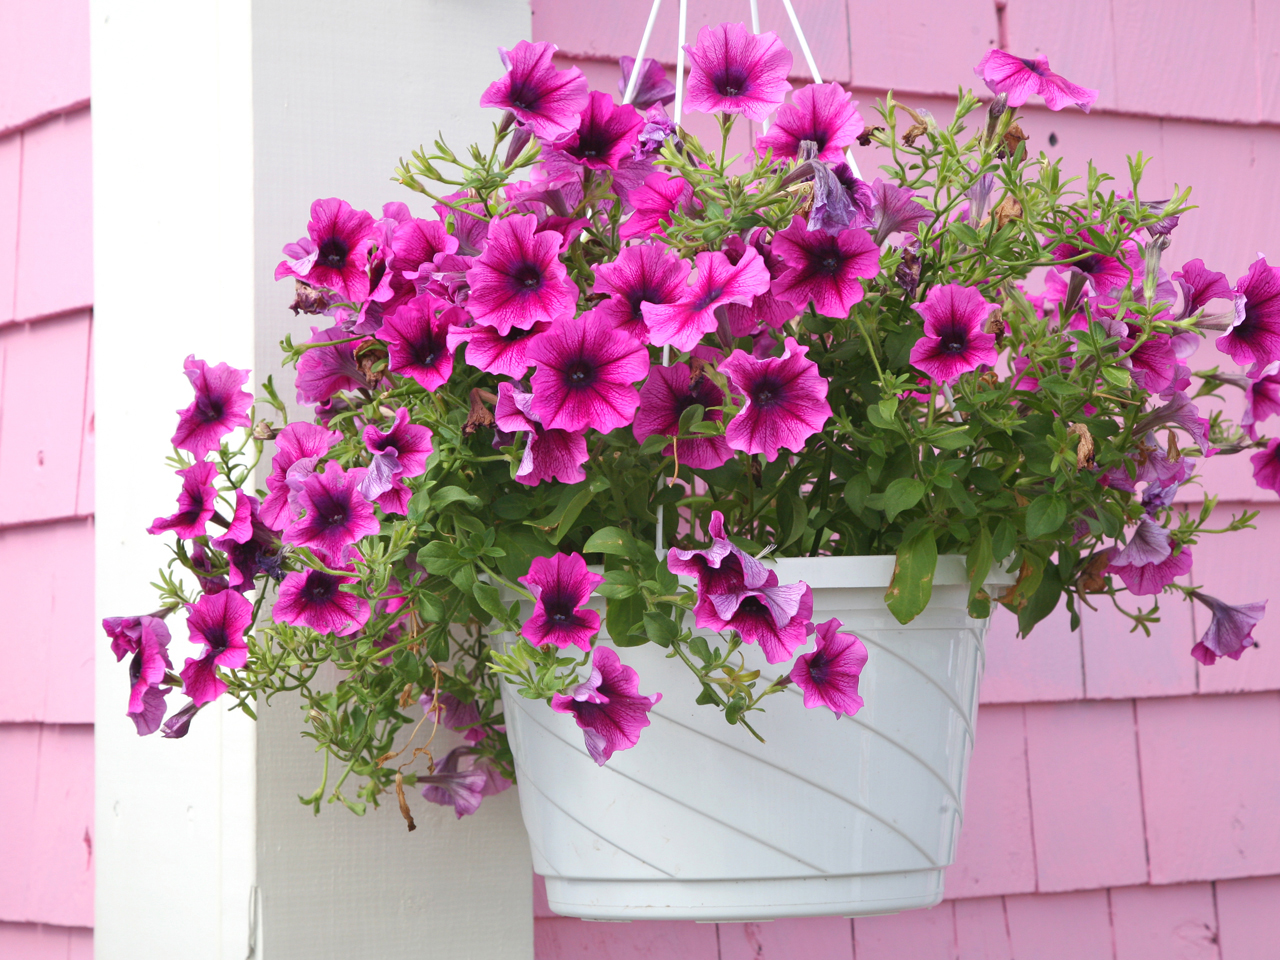 How To Plant Stunning Hanging Baskets And Containers Chatelaine